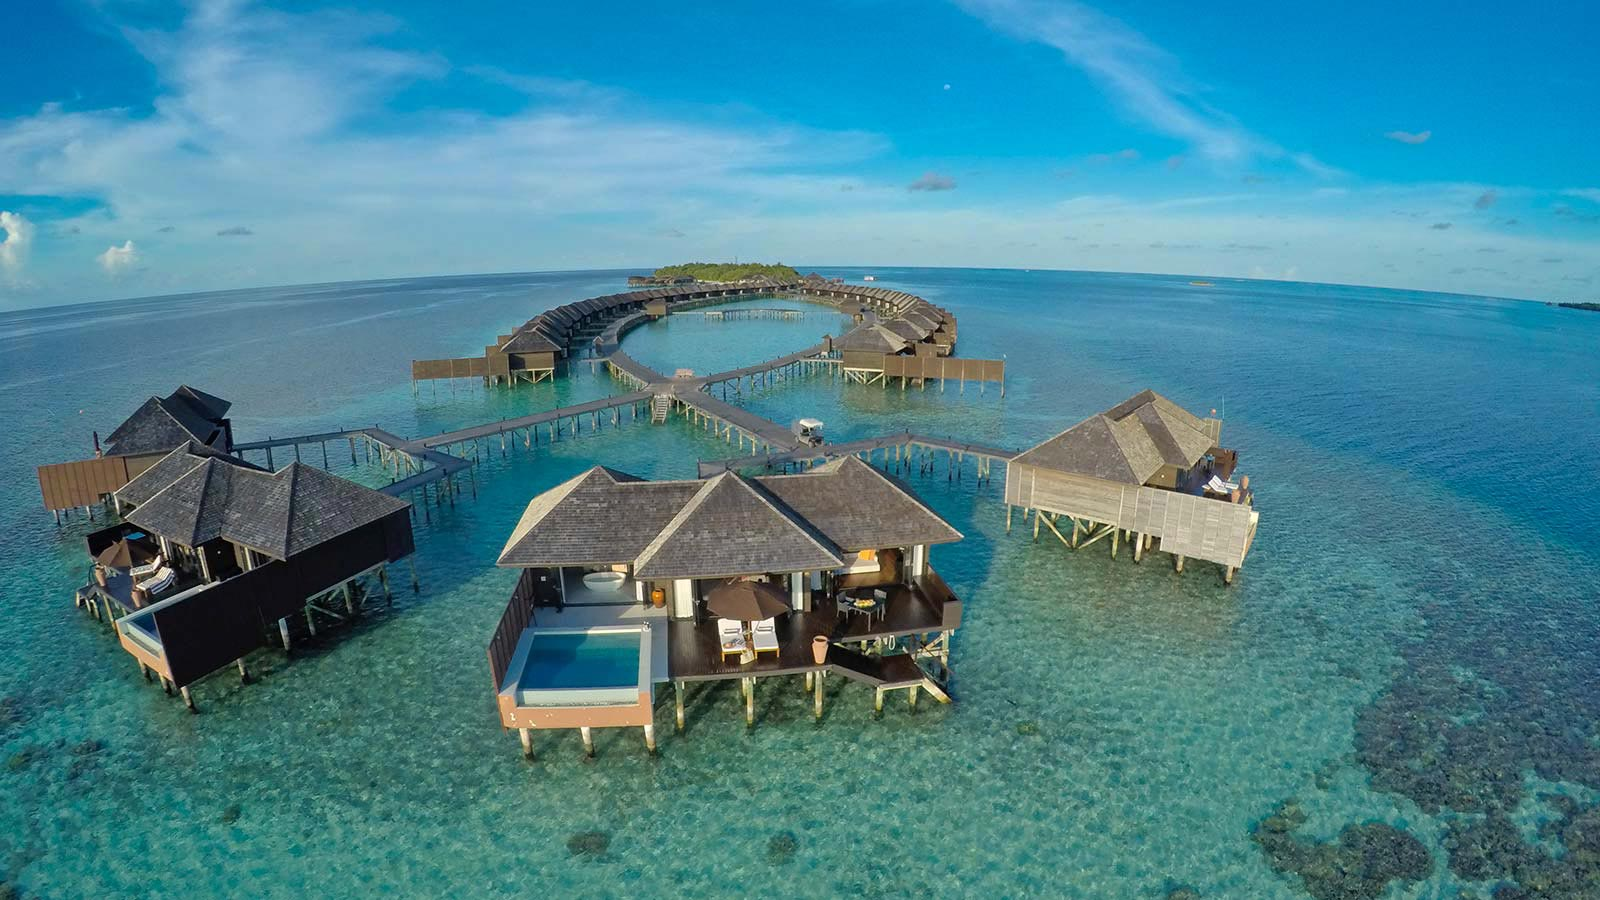 Maldives is famous for their luxury resorts and floating water bungalows.